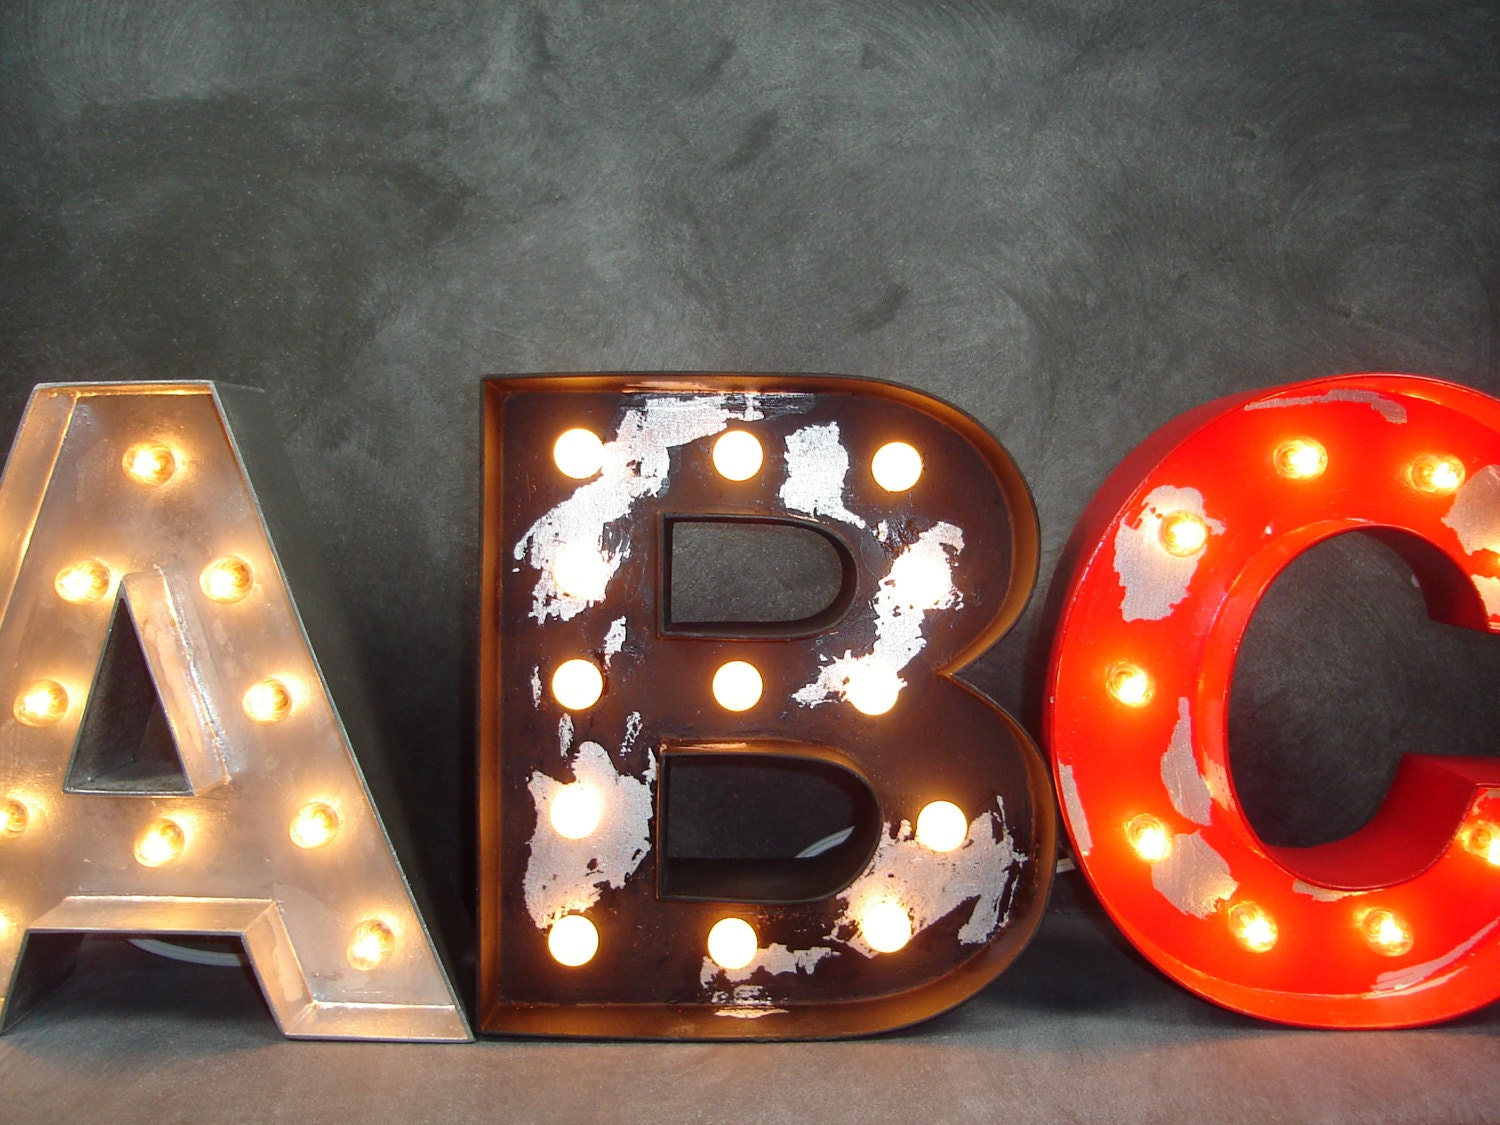 12 custom industrial style lighted wood letters by With lighted wooden letters